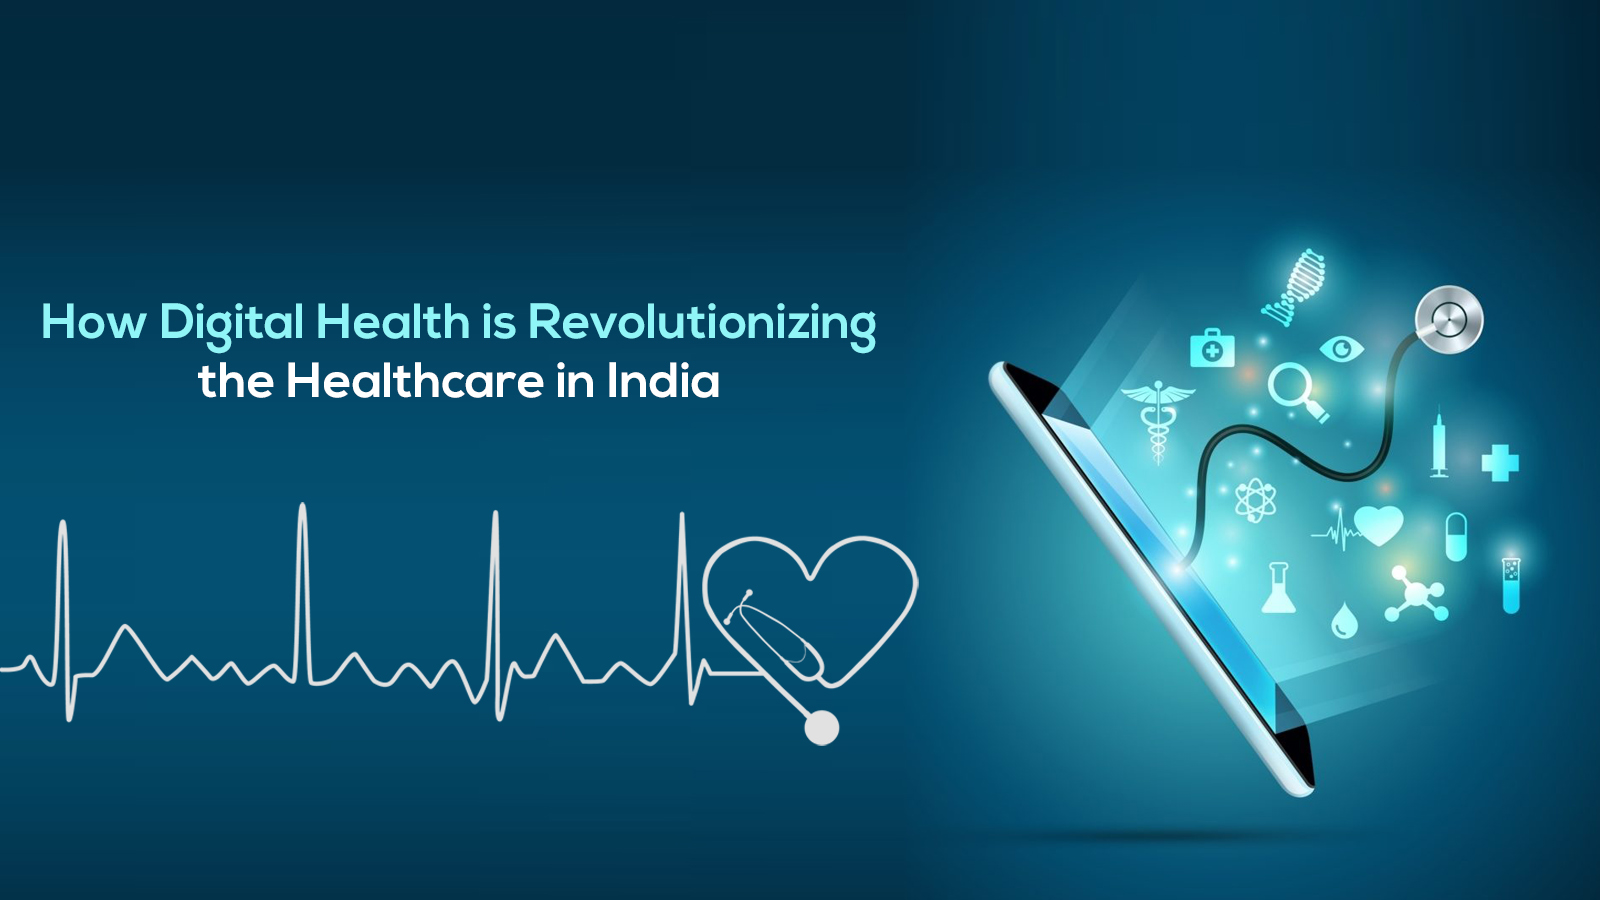 How Digital Health is Revolutionizing the Healthcare in India.